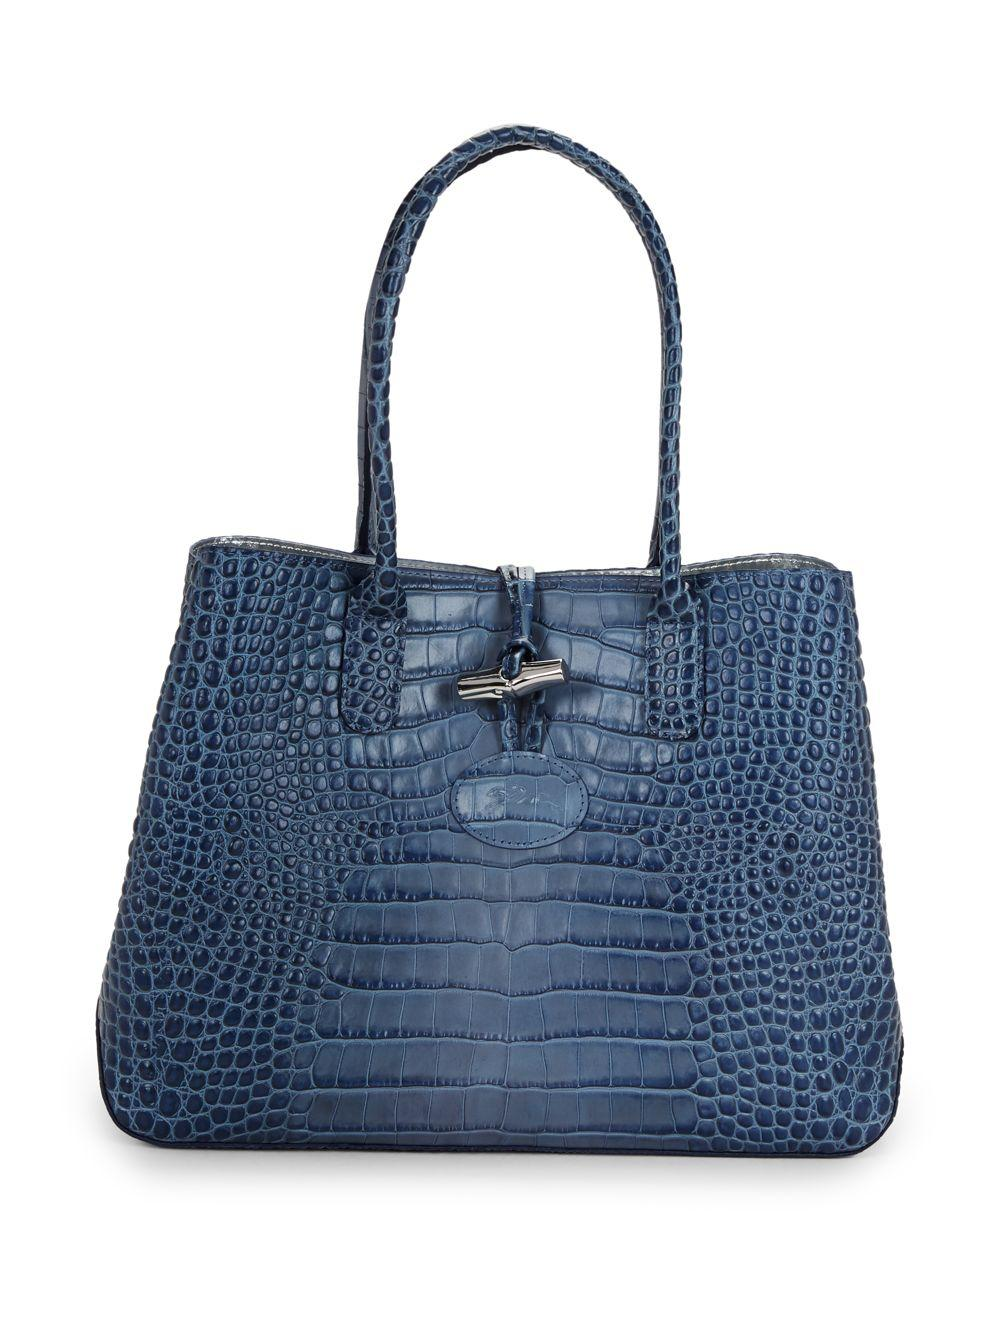 Longchamp Roseau Croc-embossed Leather Tote in Blue - Lyst 9aaf034d7b044